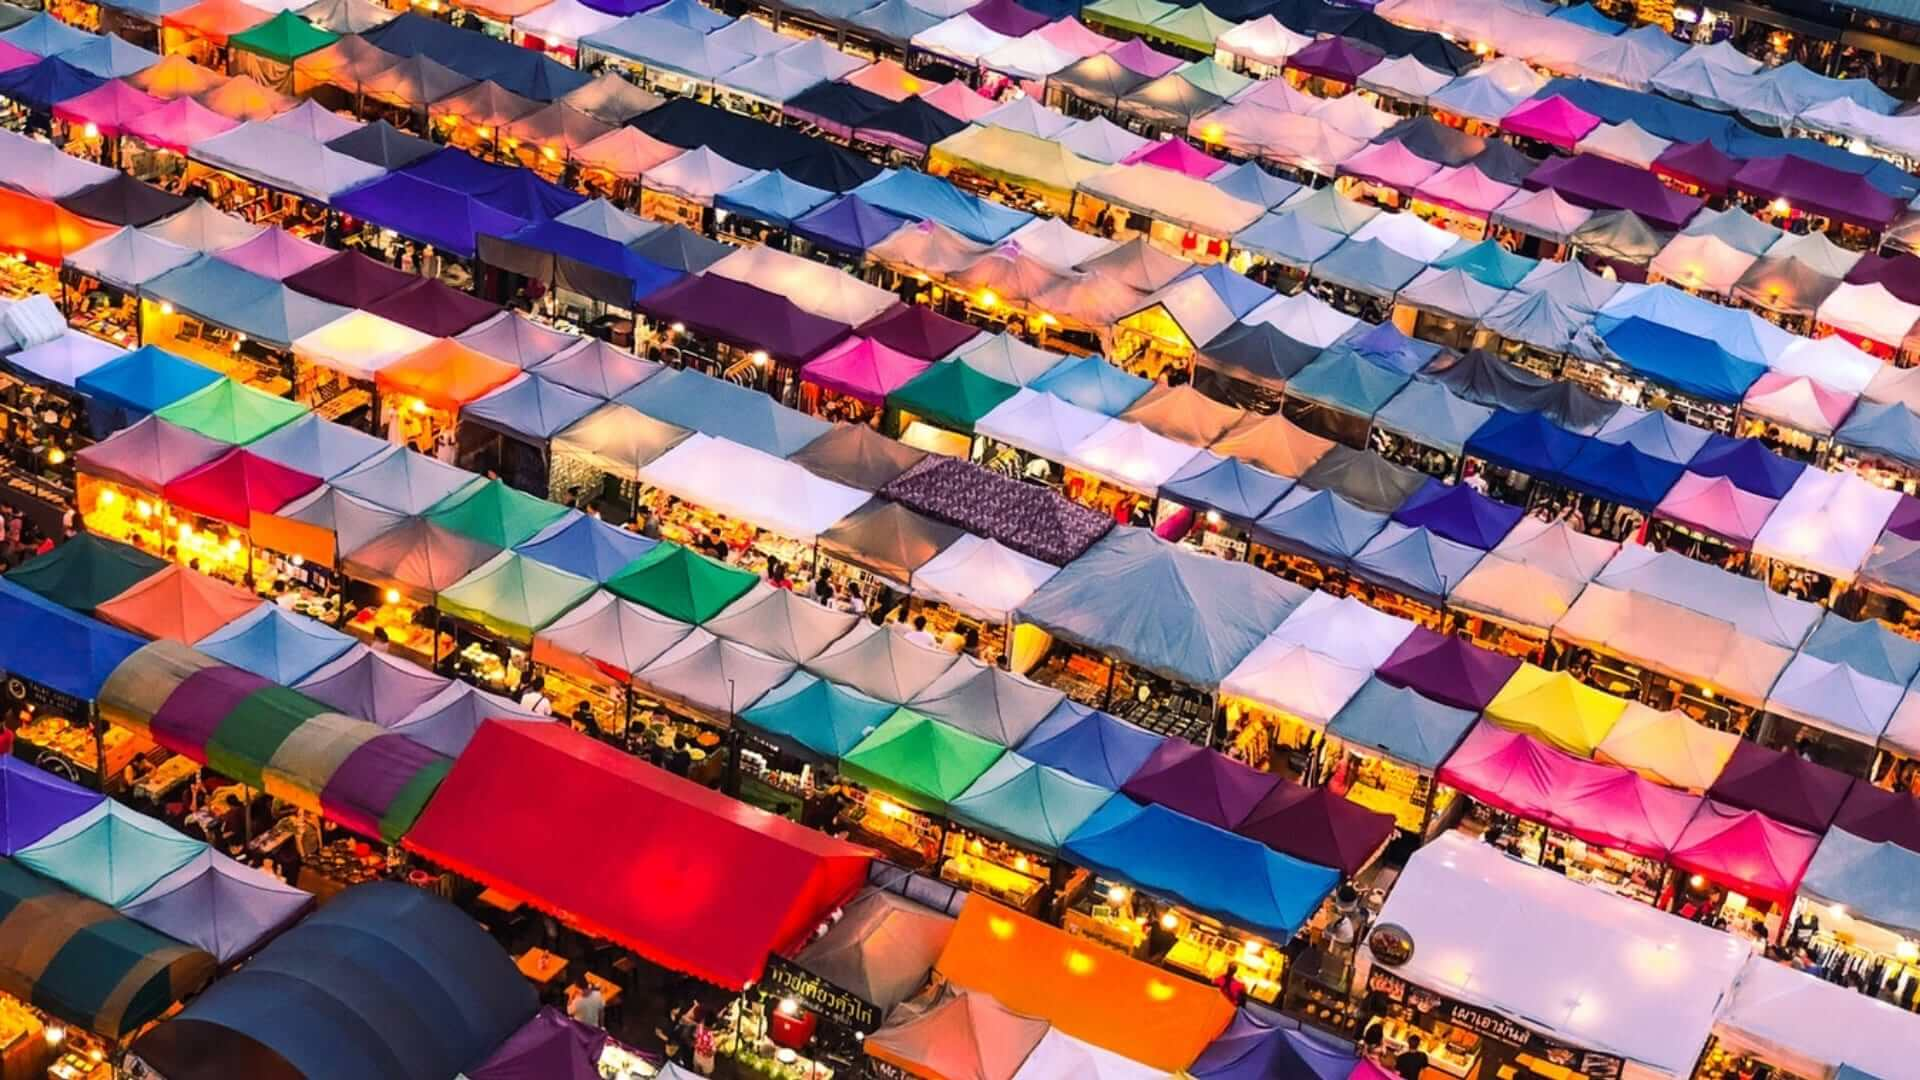 Colored tents are illuminated at a market during the evening in Thailand.